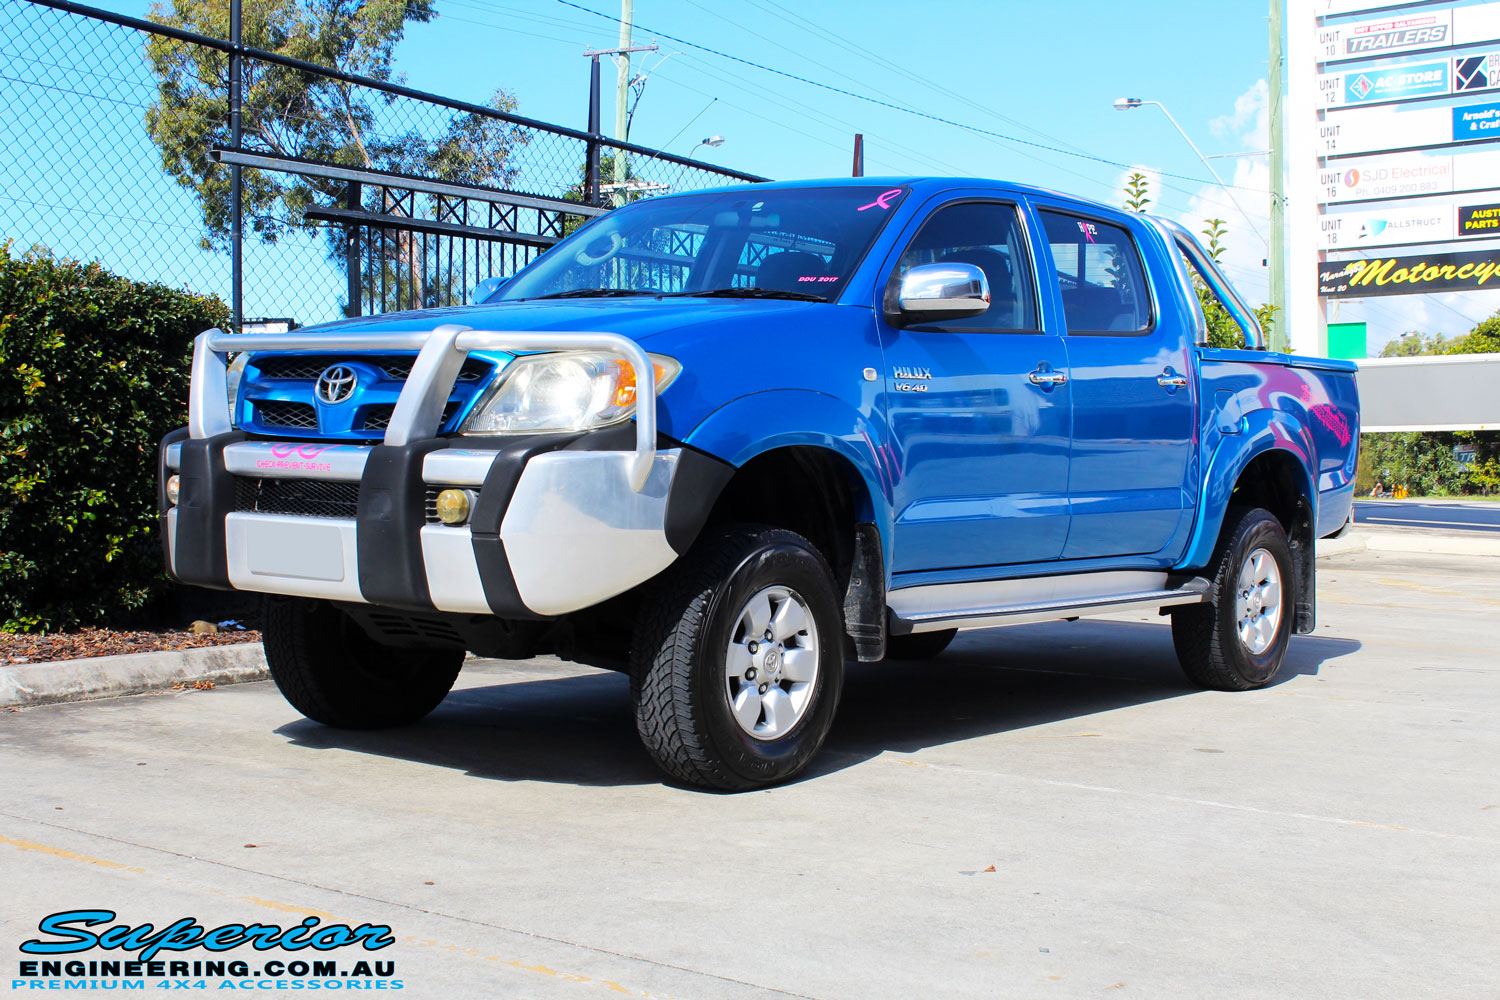 "Left front side view of a Blue Toyota Vigo Hilux Dual Cab after fitment of a Bilstein 2"" Inch Lift Kit"